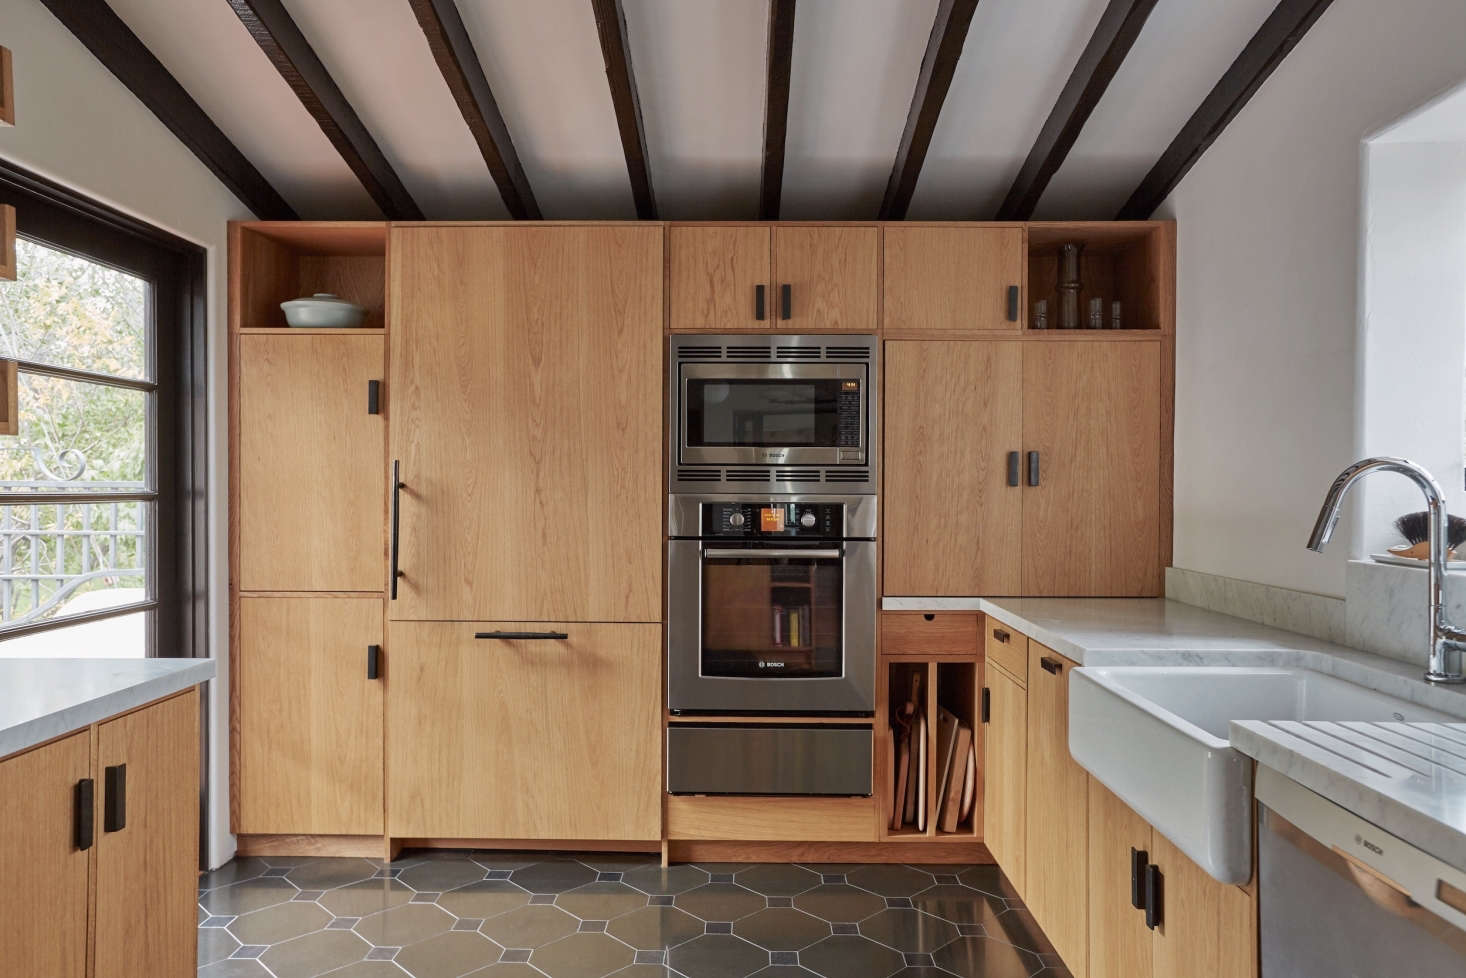 Trend Alert: 9 Kitchens With Floor-to-Ceiling Cabinetry